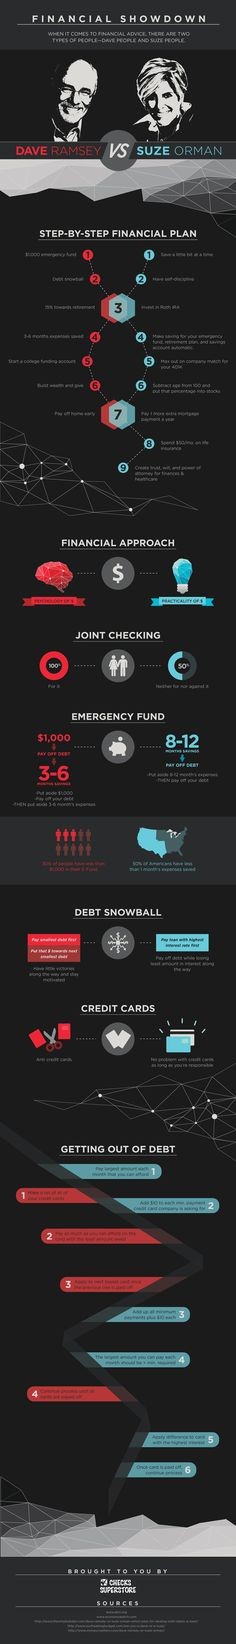 I ran across this infographic on Pinterest and had to post it here. First, to share with you. And second, as a reminder to myself that there are several roads to financial success (and I shouldn't beat myself up if you swerve off of the road). The graphic, courtesy of Checks Superstore, really shows the … Continue reading Ramsey vs Orman →